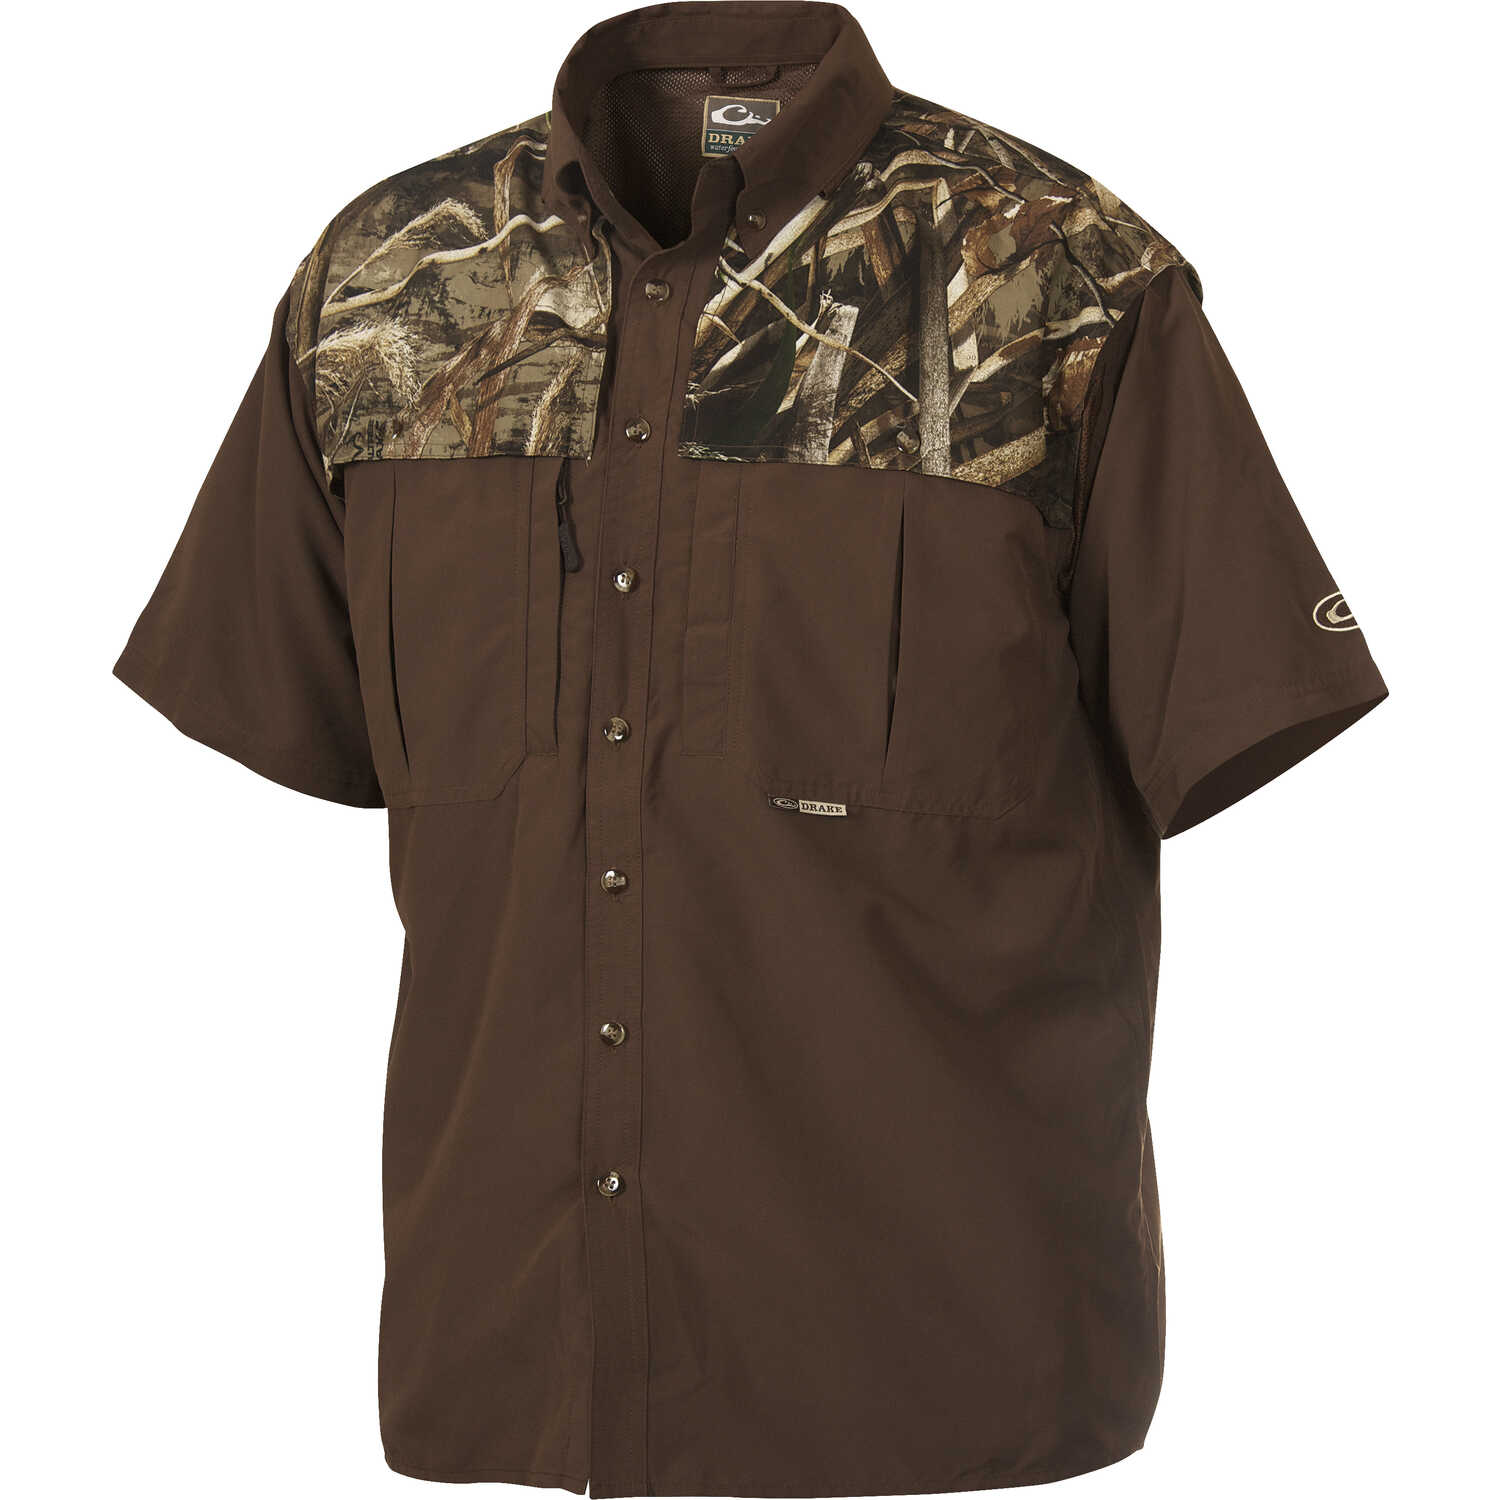 Drake  EST  L  Short Sleeve  Men's  Collared  Brown/Camo  Work Shirt